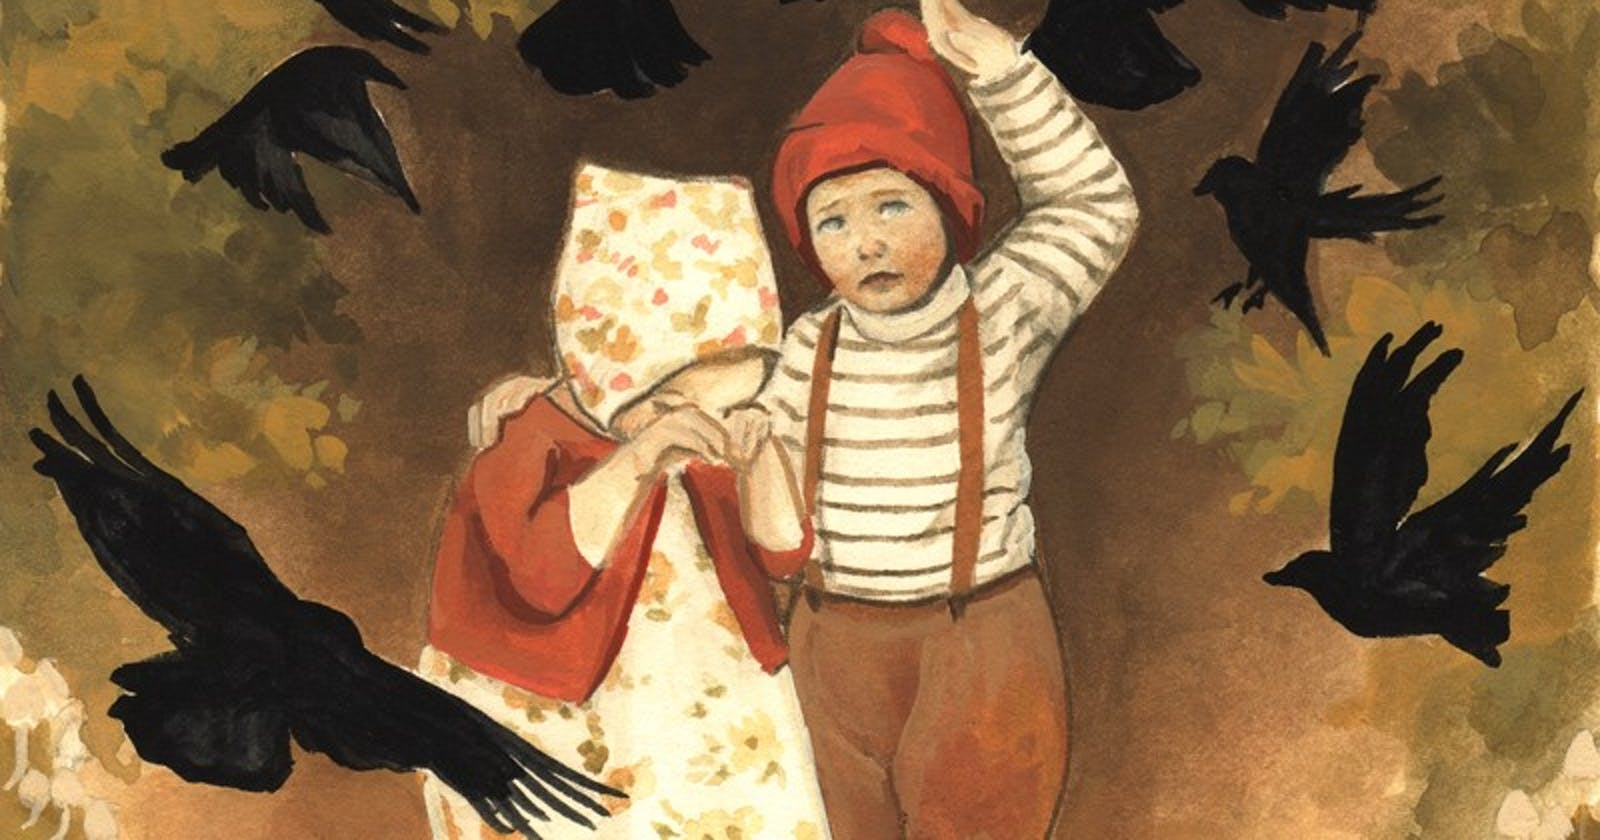 Child Online Safety Based On Lessons from Hansel & Gretel